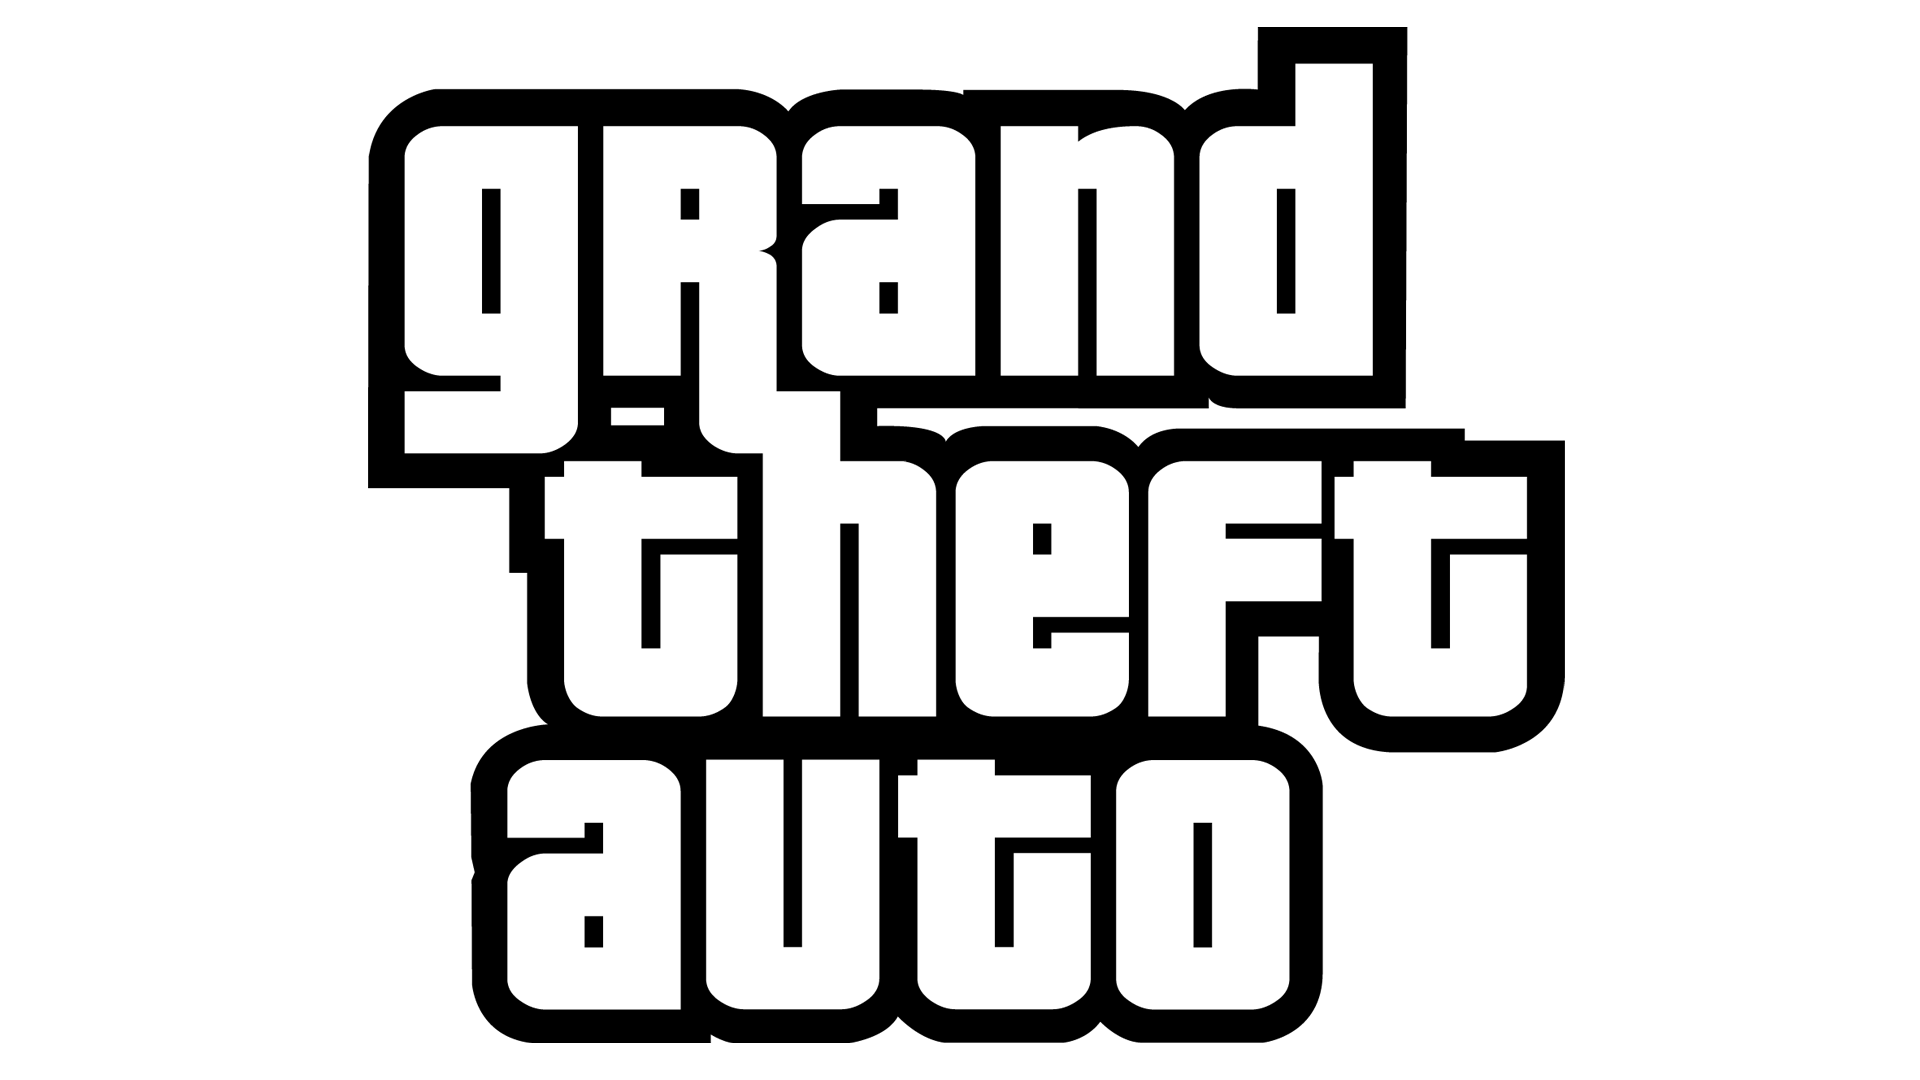 Meaning GTA logo and symbol.